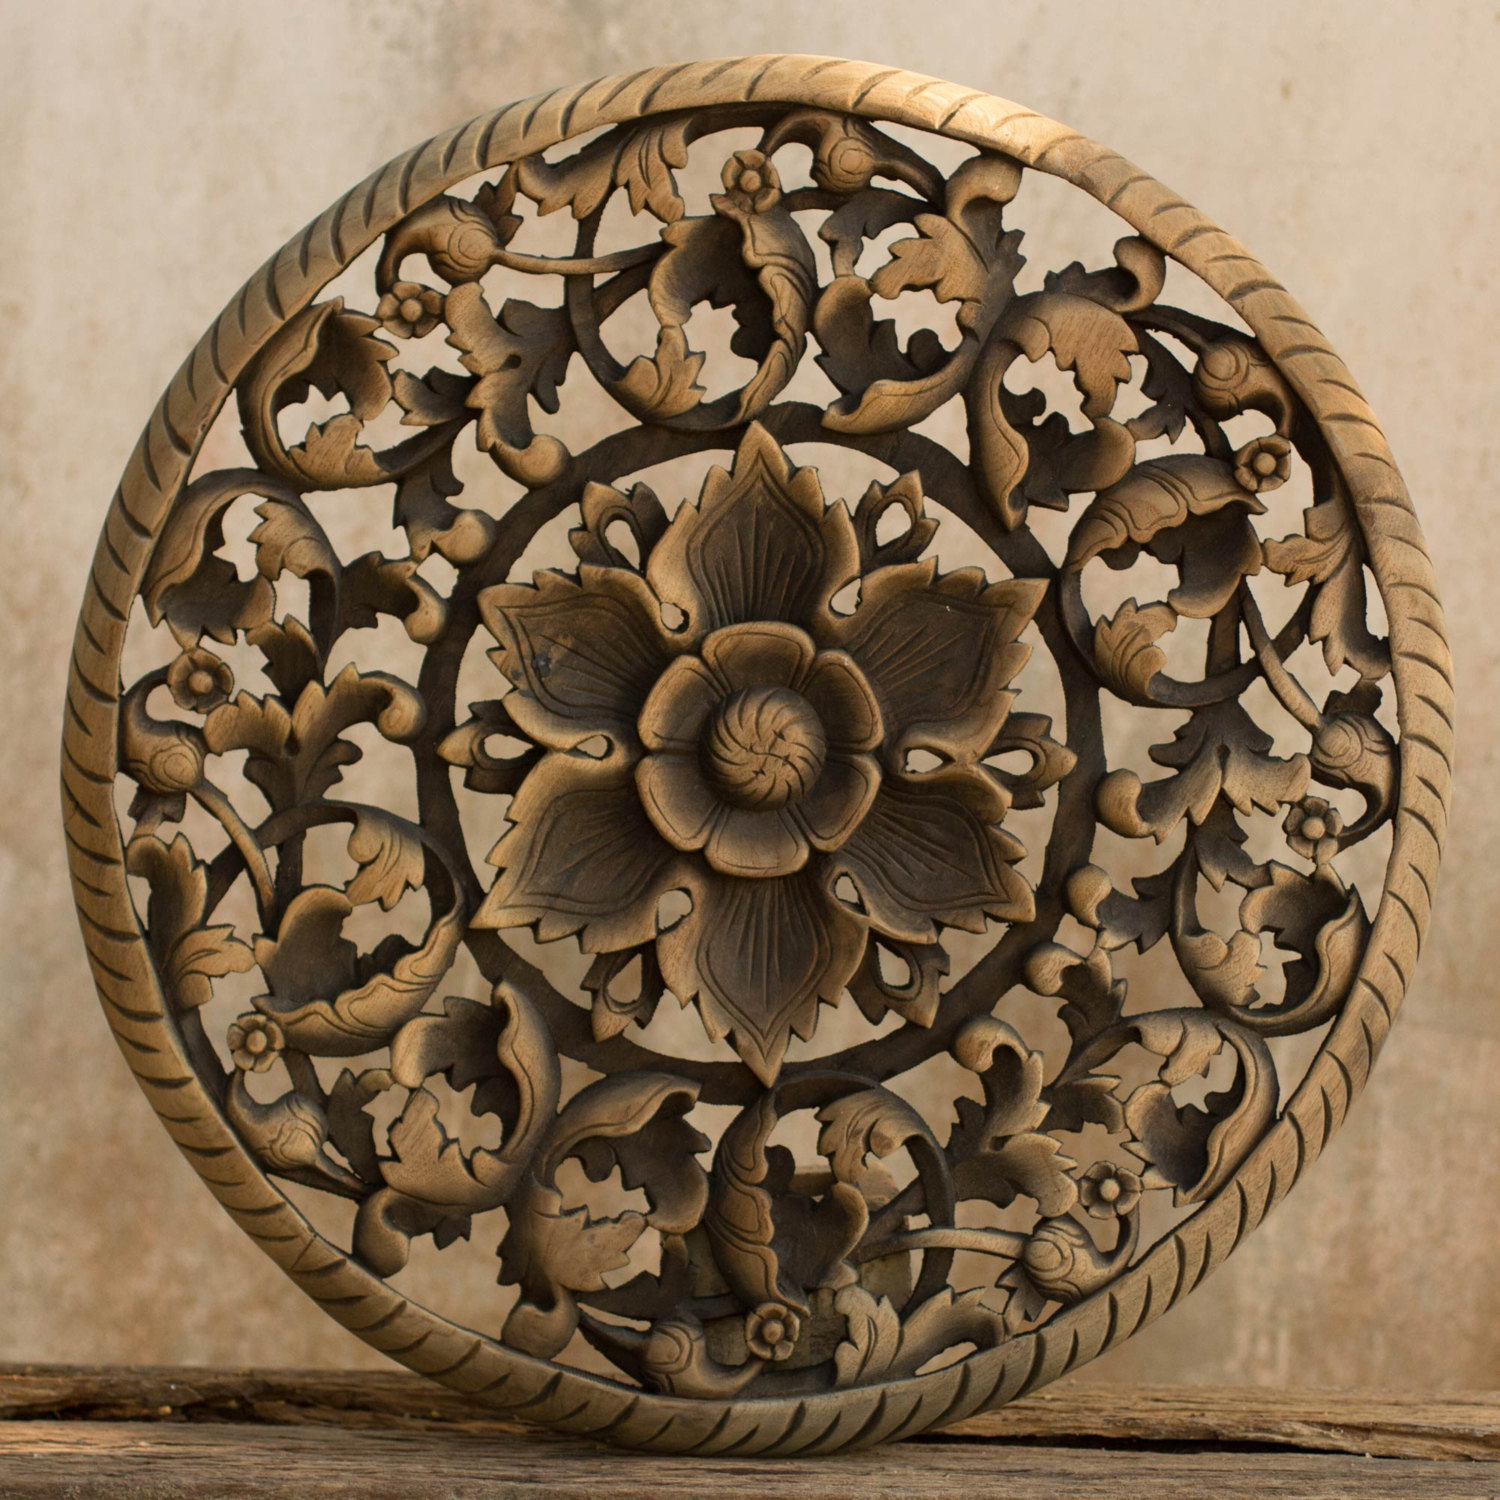 Wood Decorative Wall Art Buy Tree Dimensional Floral Wooden Wall Hanging Online